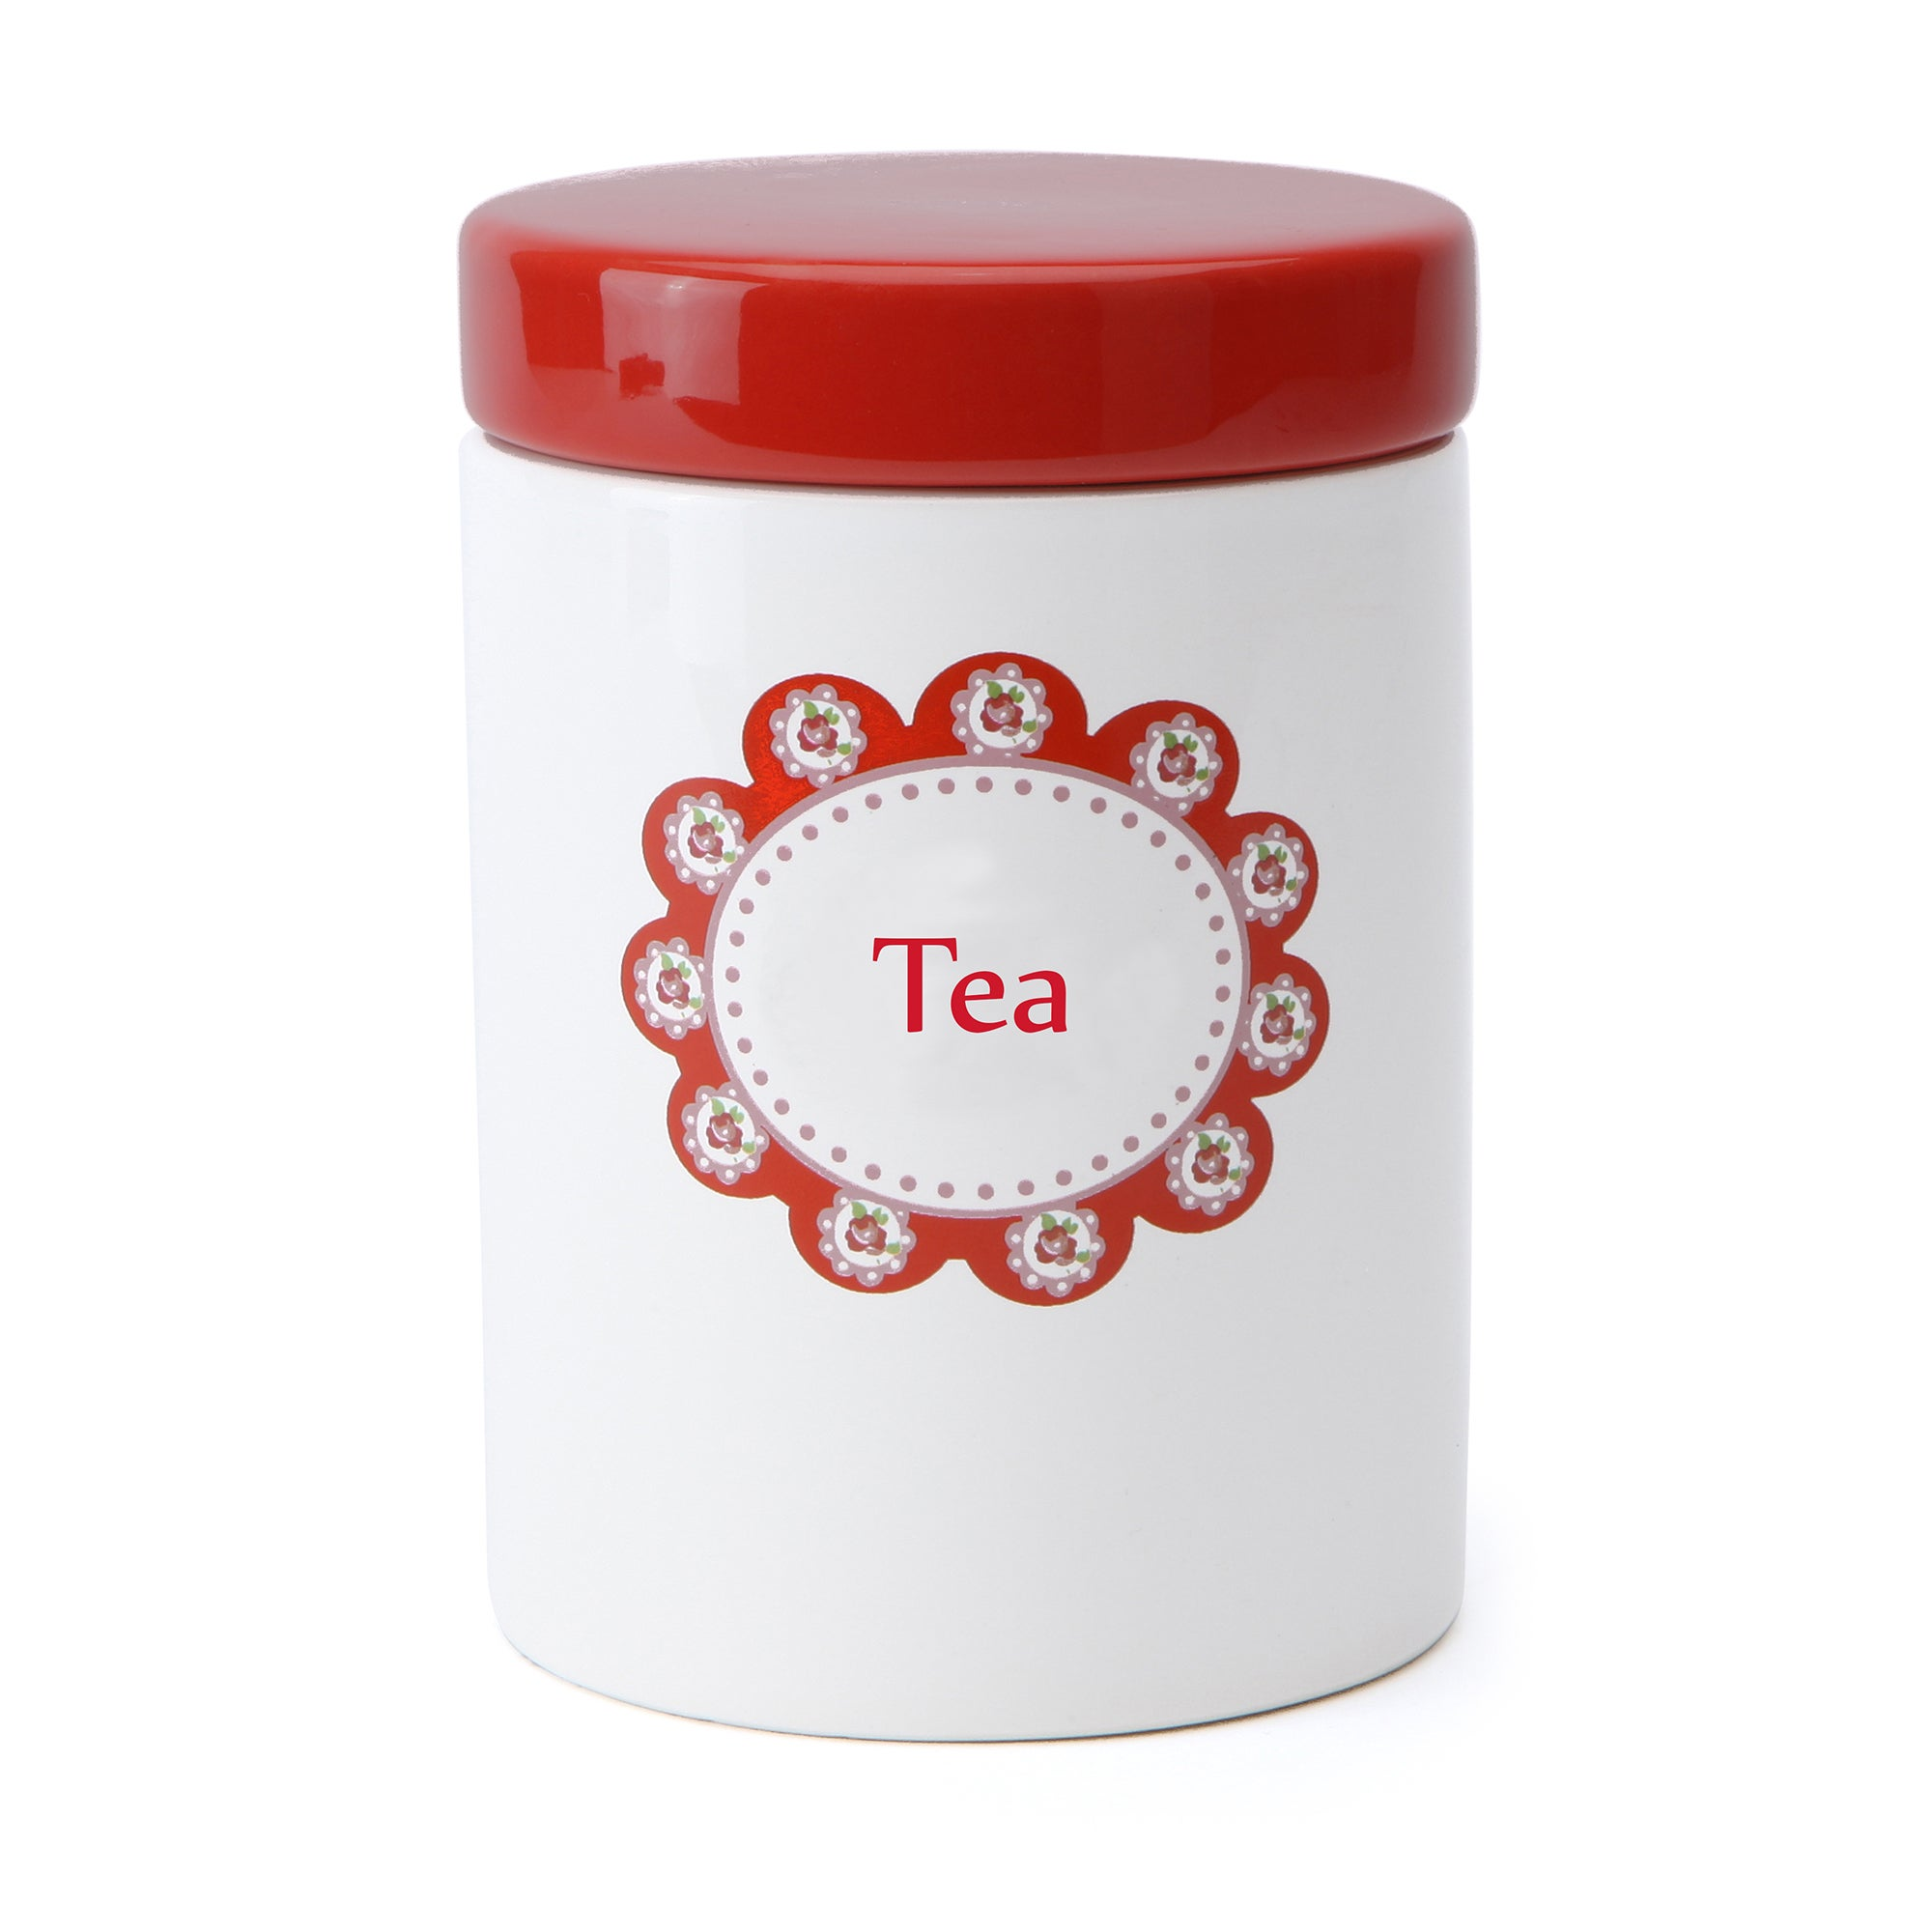 Rose and Ellis Allexton Collection Tea Canister